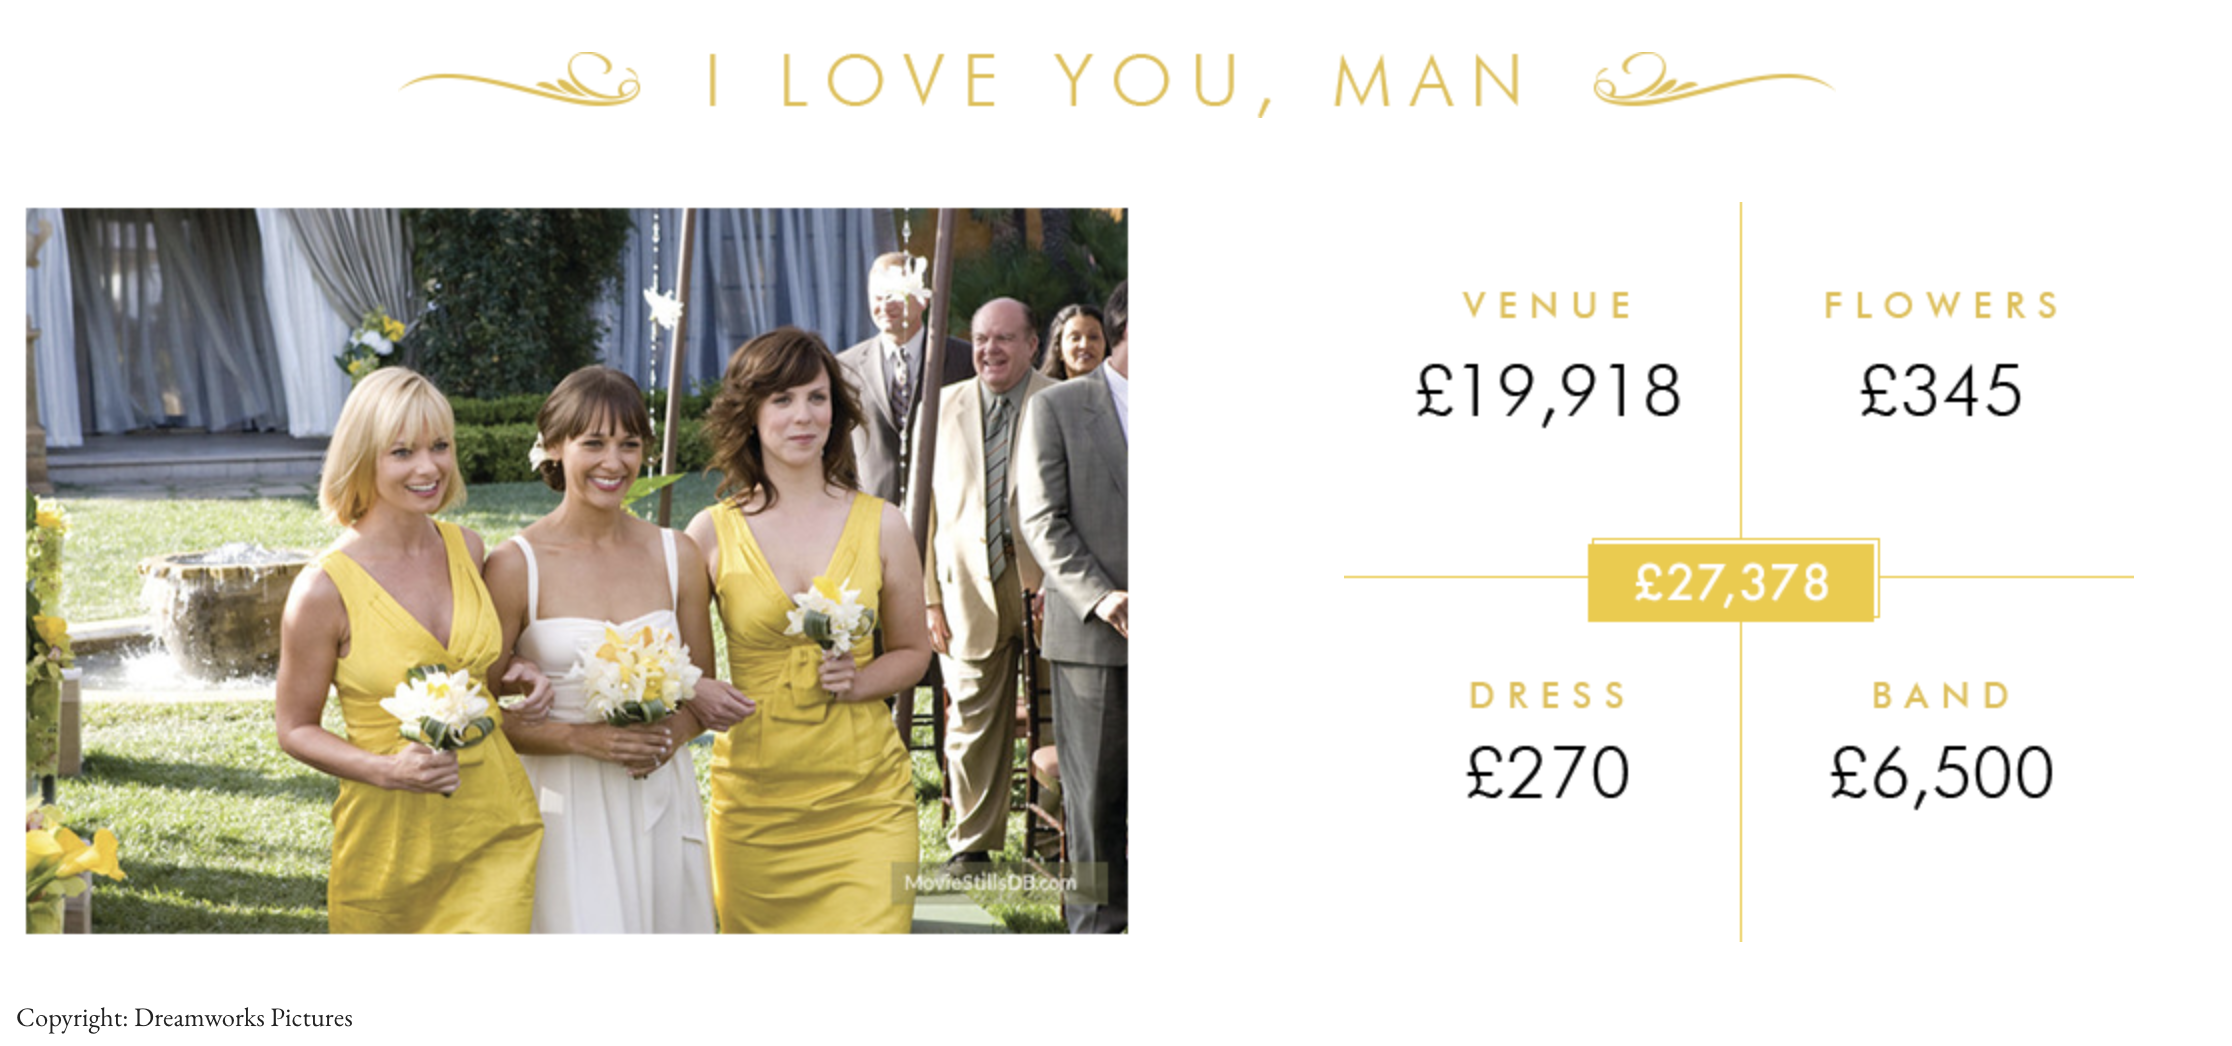 i love you man movie wedding cost in real life